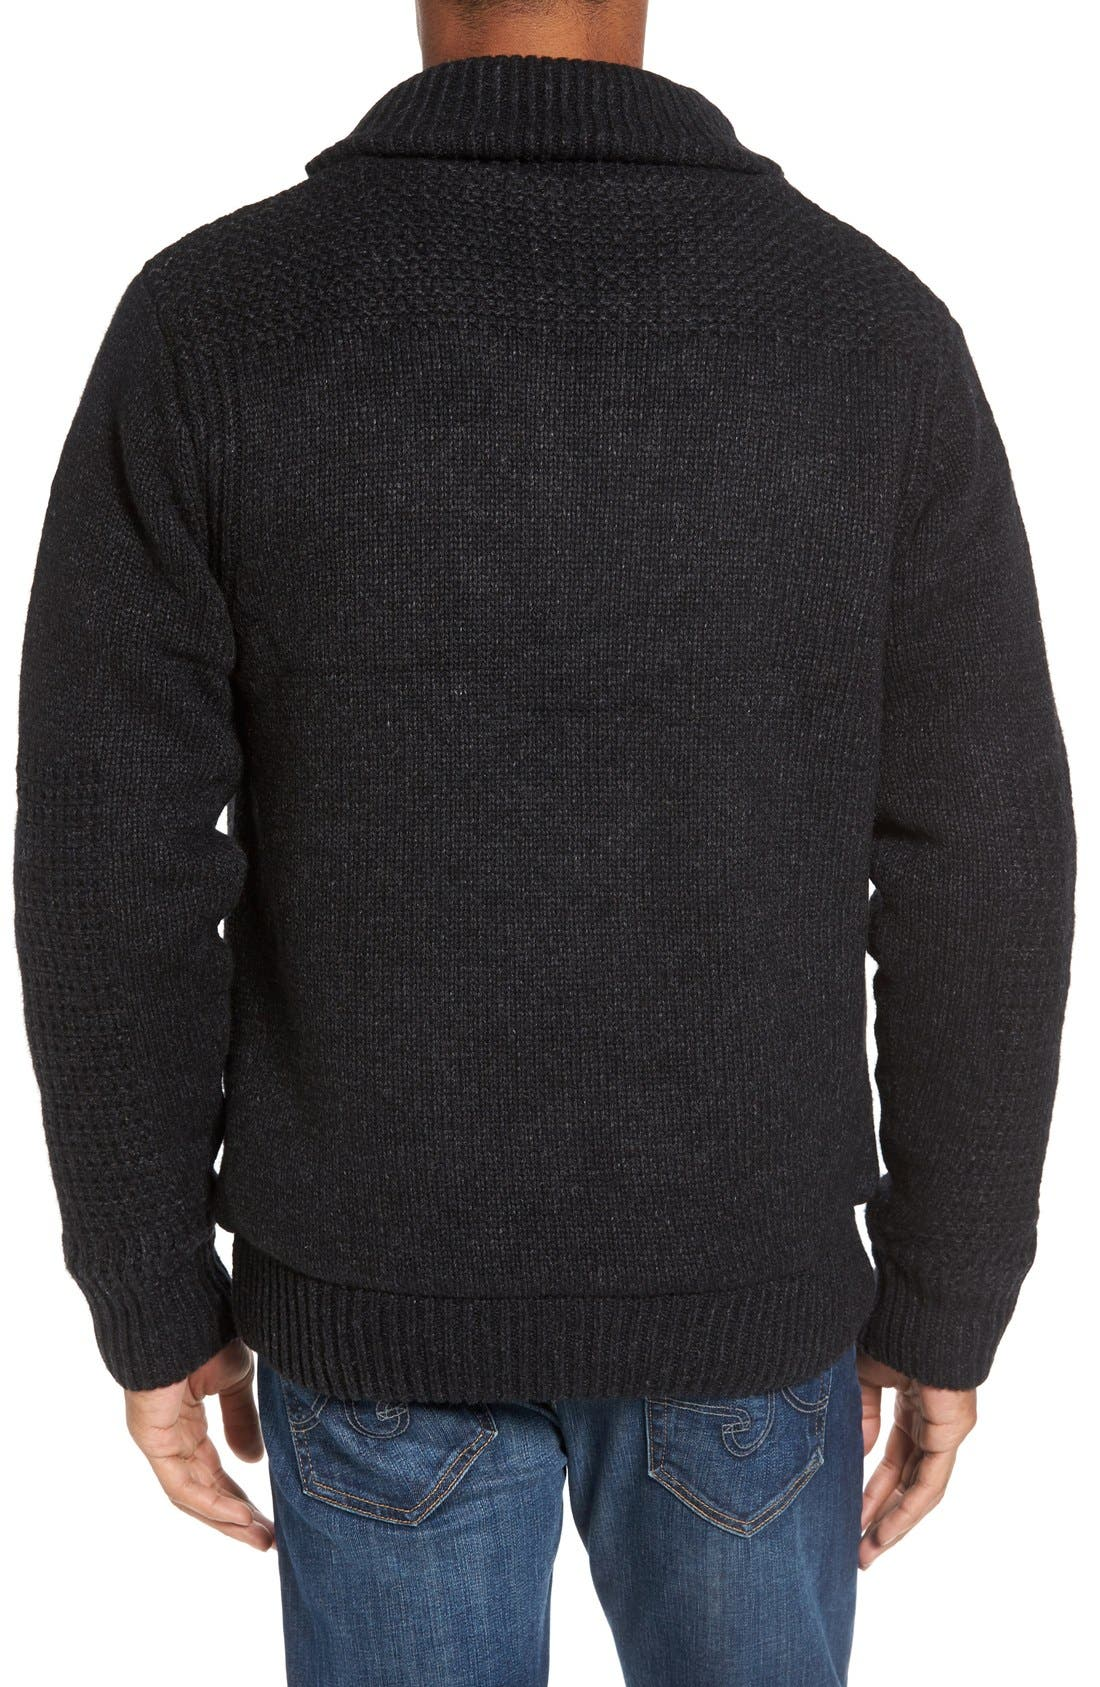 Lined Wool Zip Sweater,                             Alternate thumbnail 10, color,                             BLACK